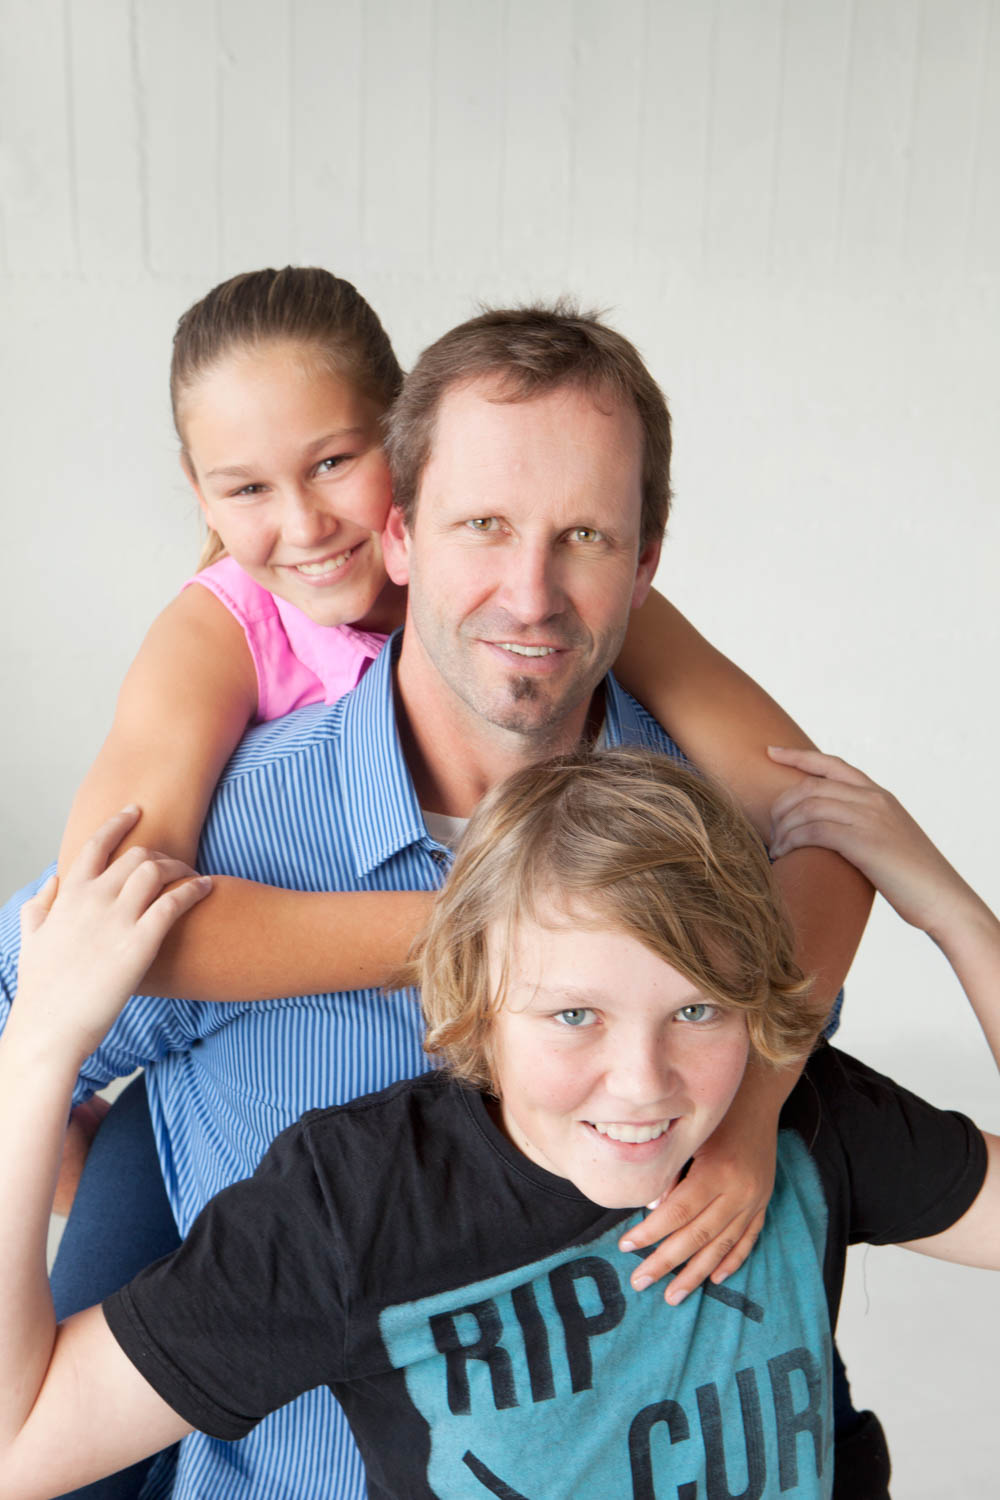 Family_Photographer_Auckland_17999_5374.jpg